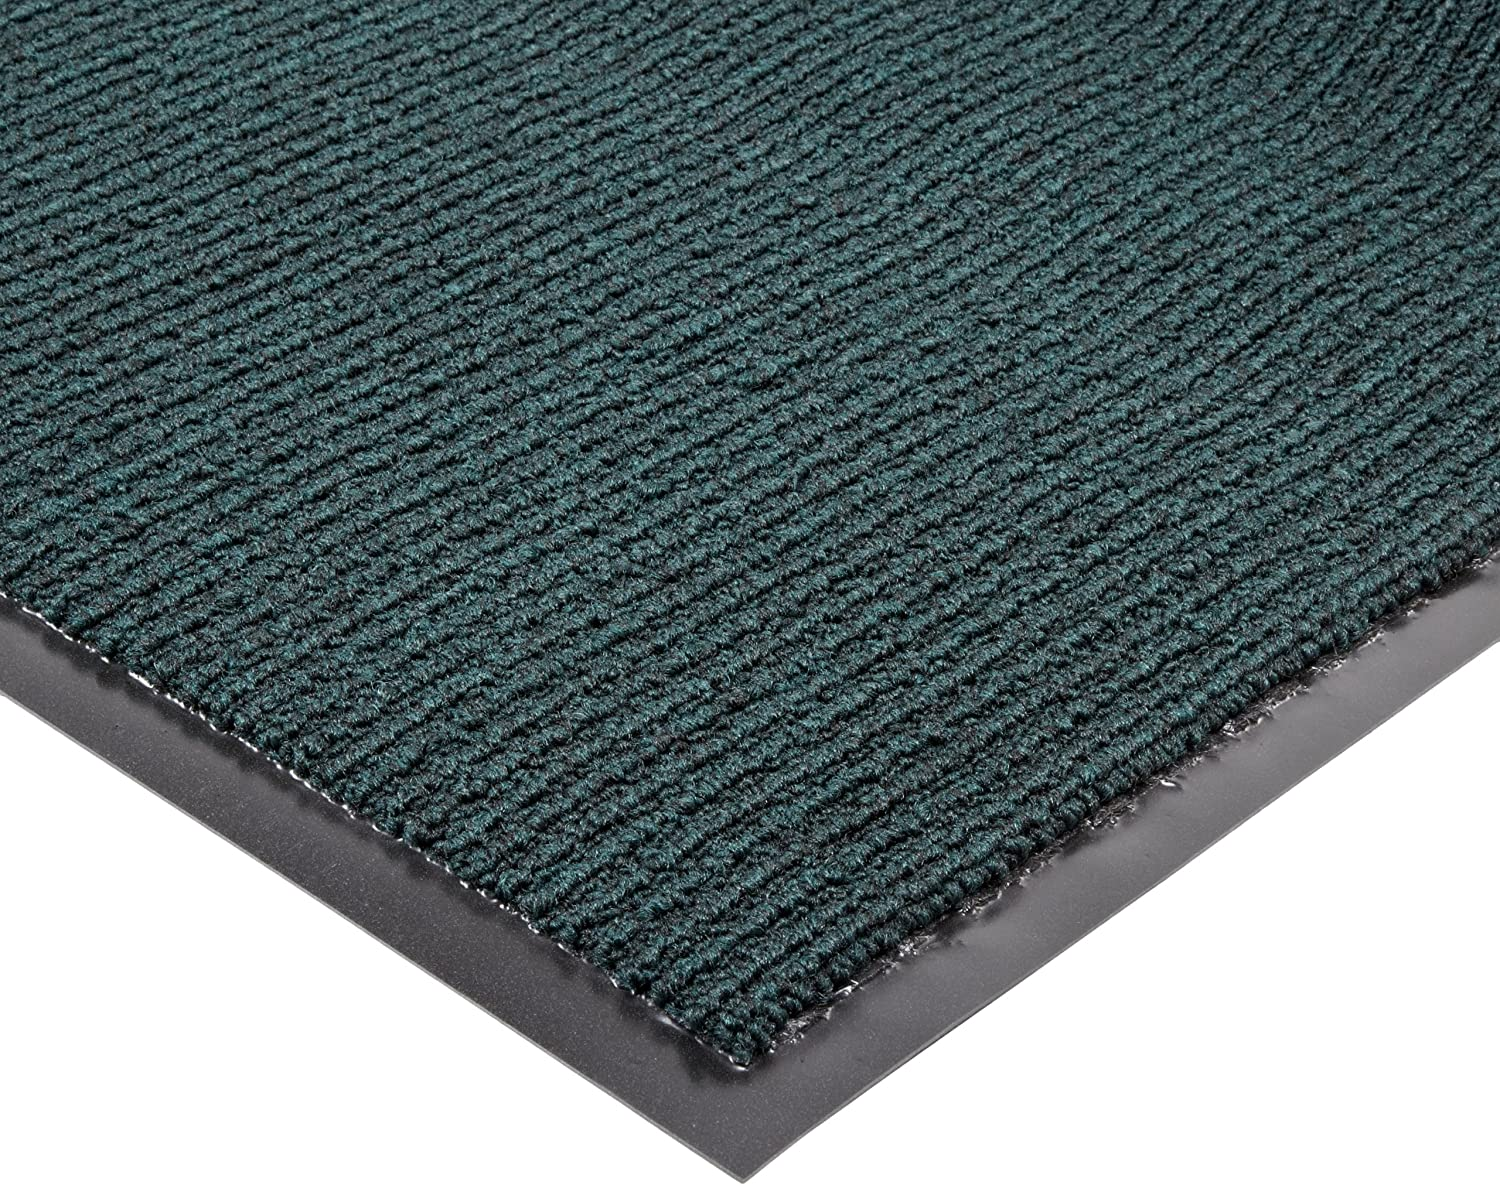 Notrax 132 Estes Entrance Mat, for Main Entranceways and Heavy Traffic Areas, 3' Width x 5' Length x 3 8  Thickness, Hunter Green